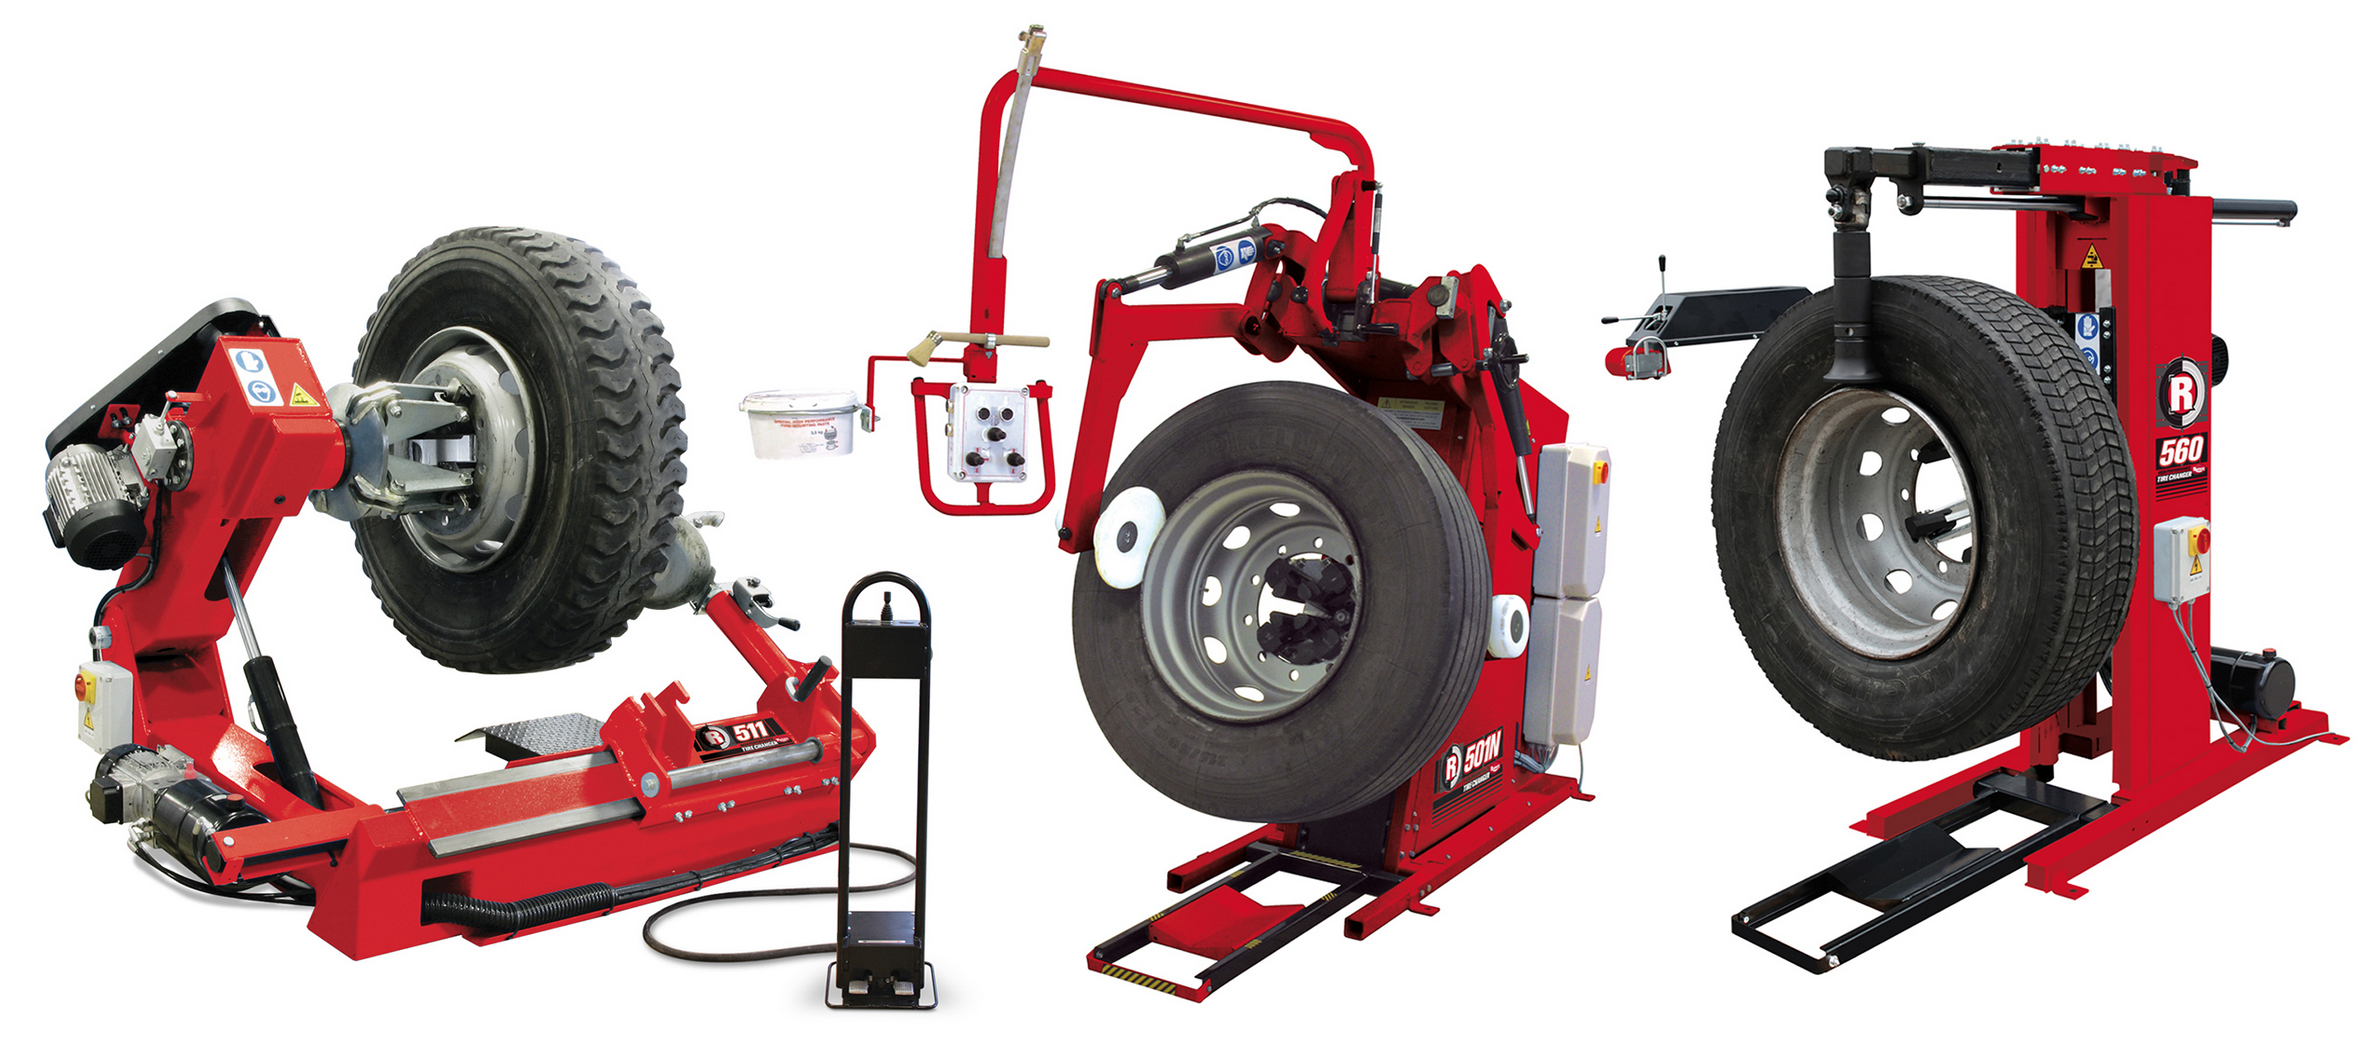 New Heavy-Duty Tire Changers from Rotary